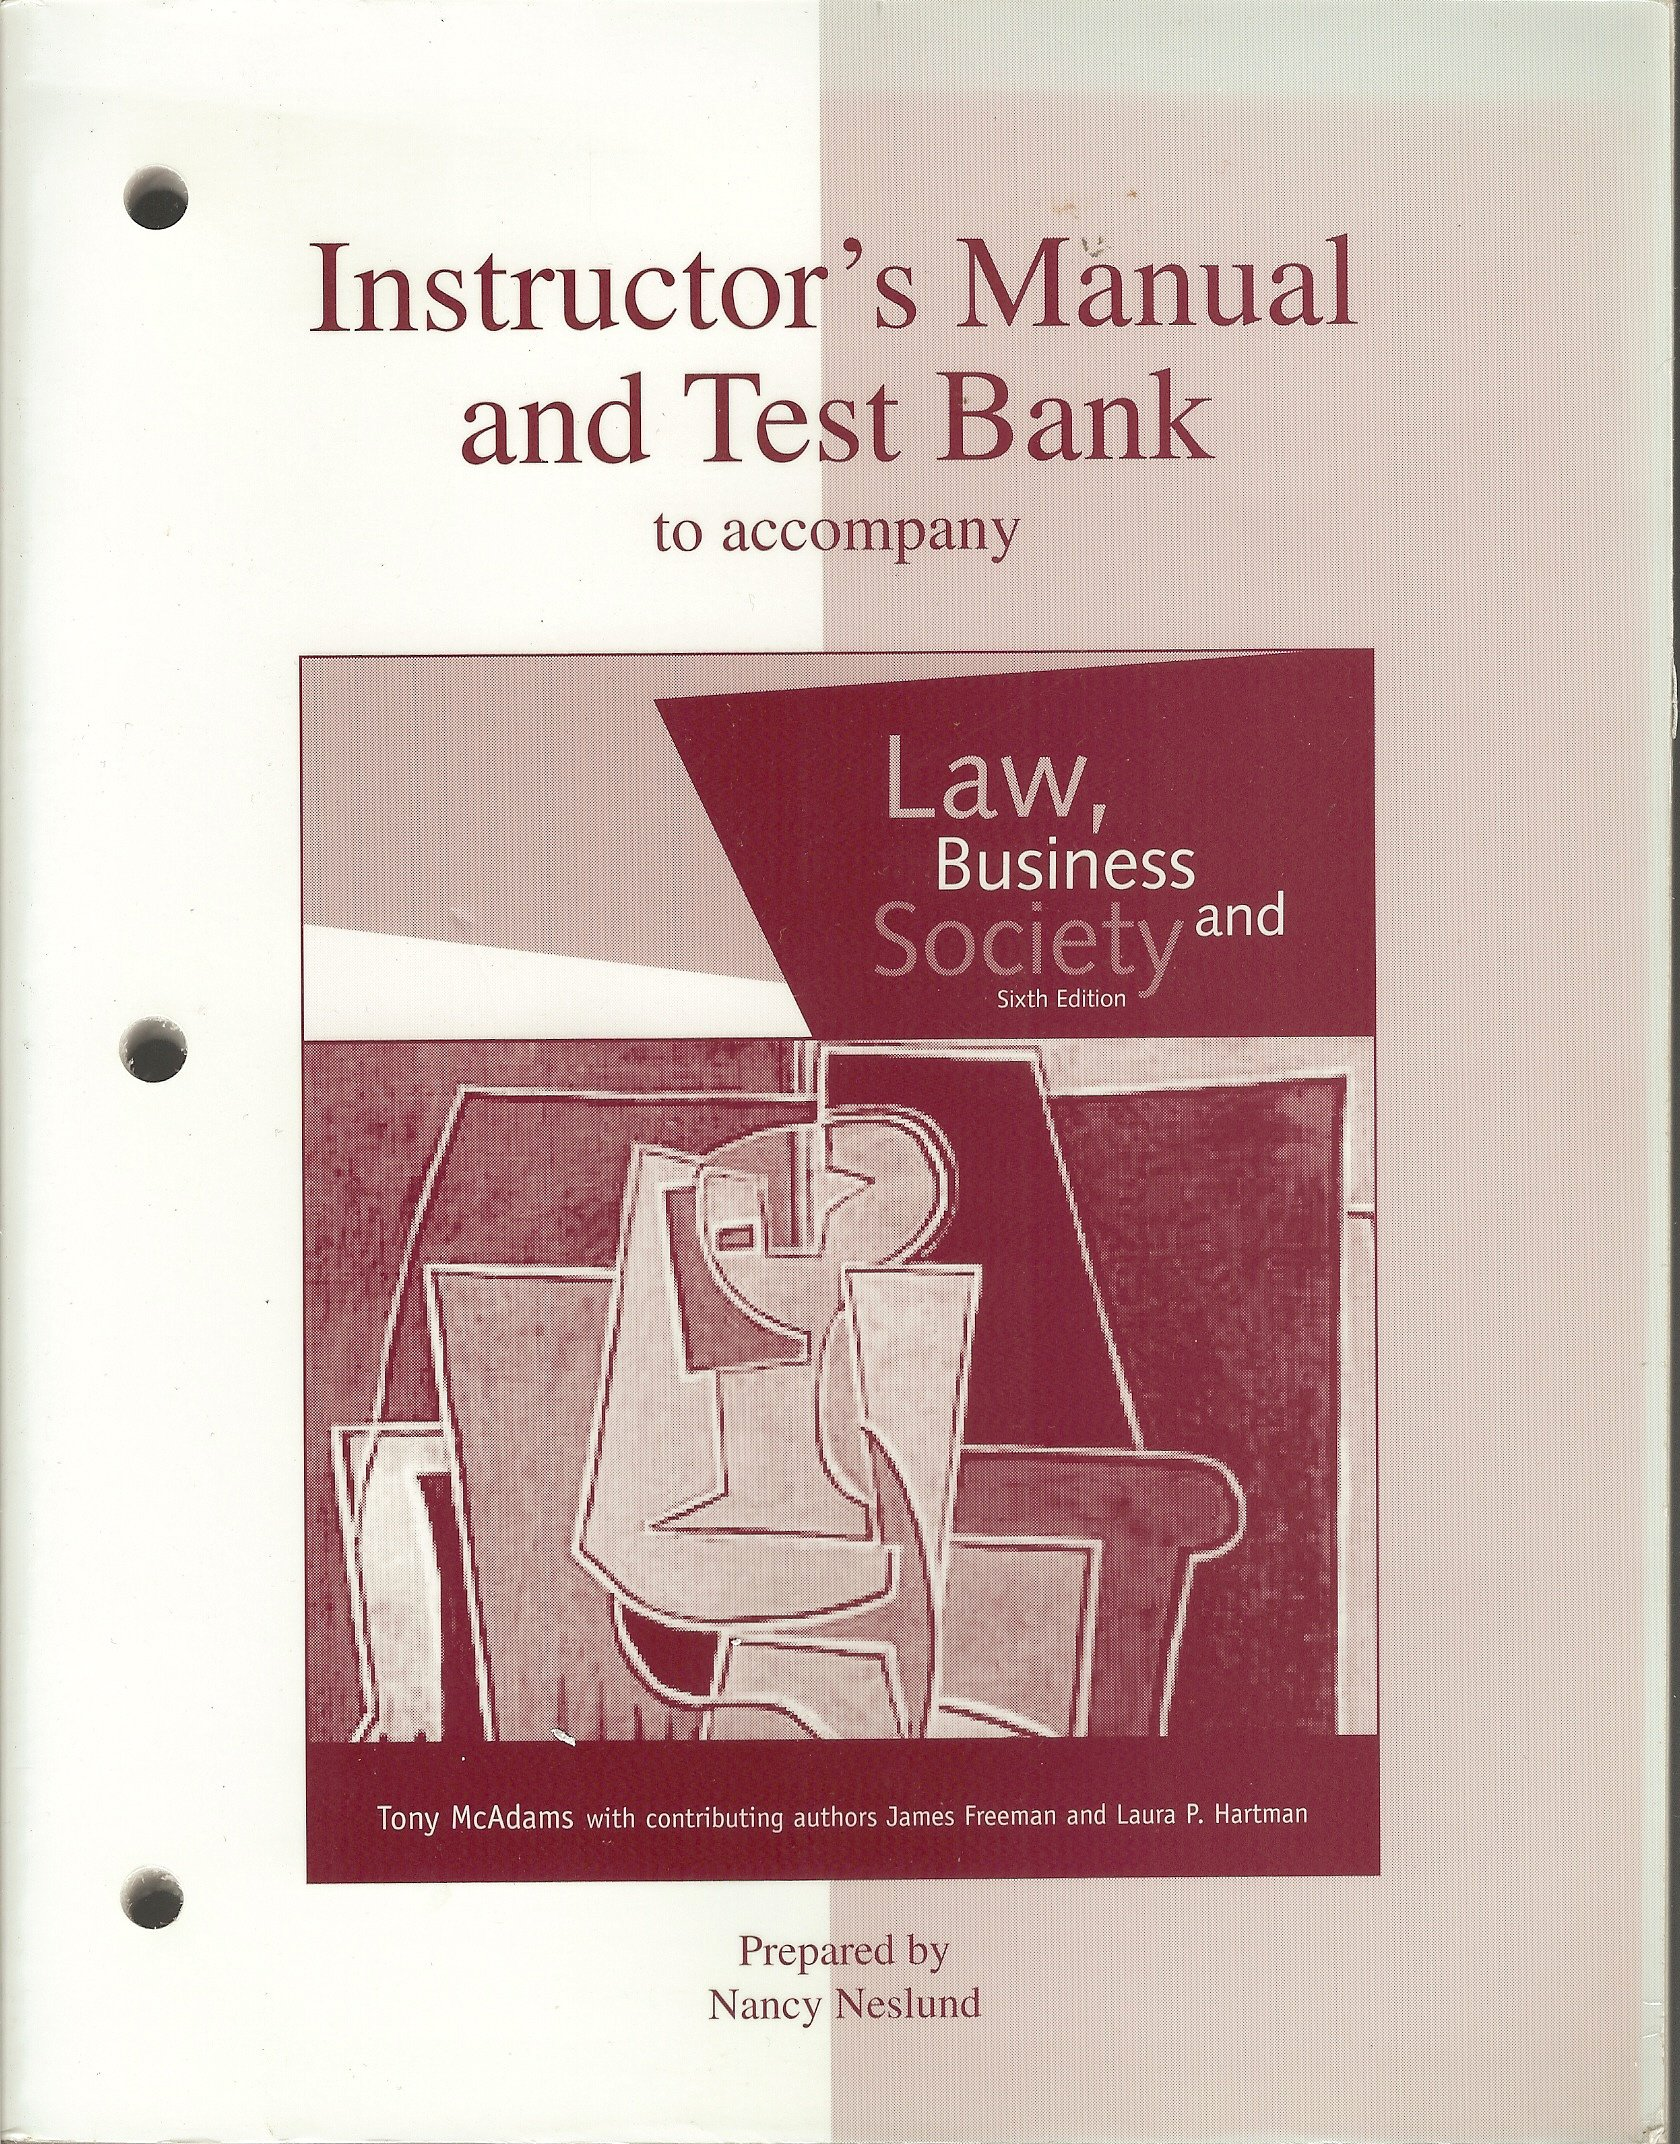 Instructor's Manual and Test Bank to Accompany Law, Business and Society:  nancy neslund: 9780072396096: Amazon.com: Books